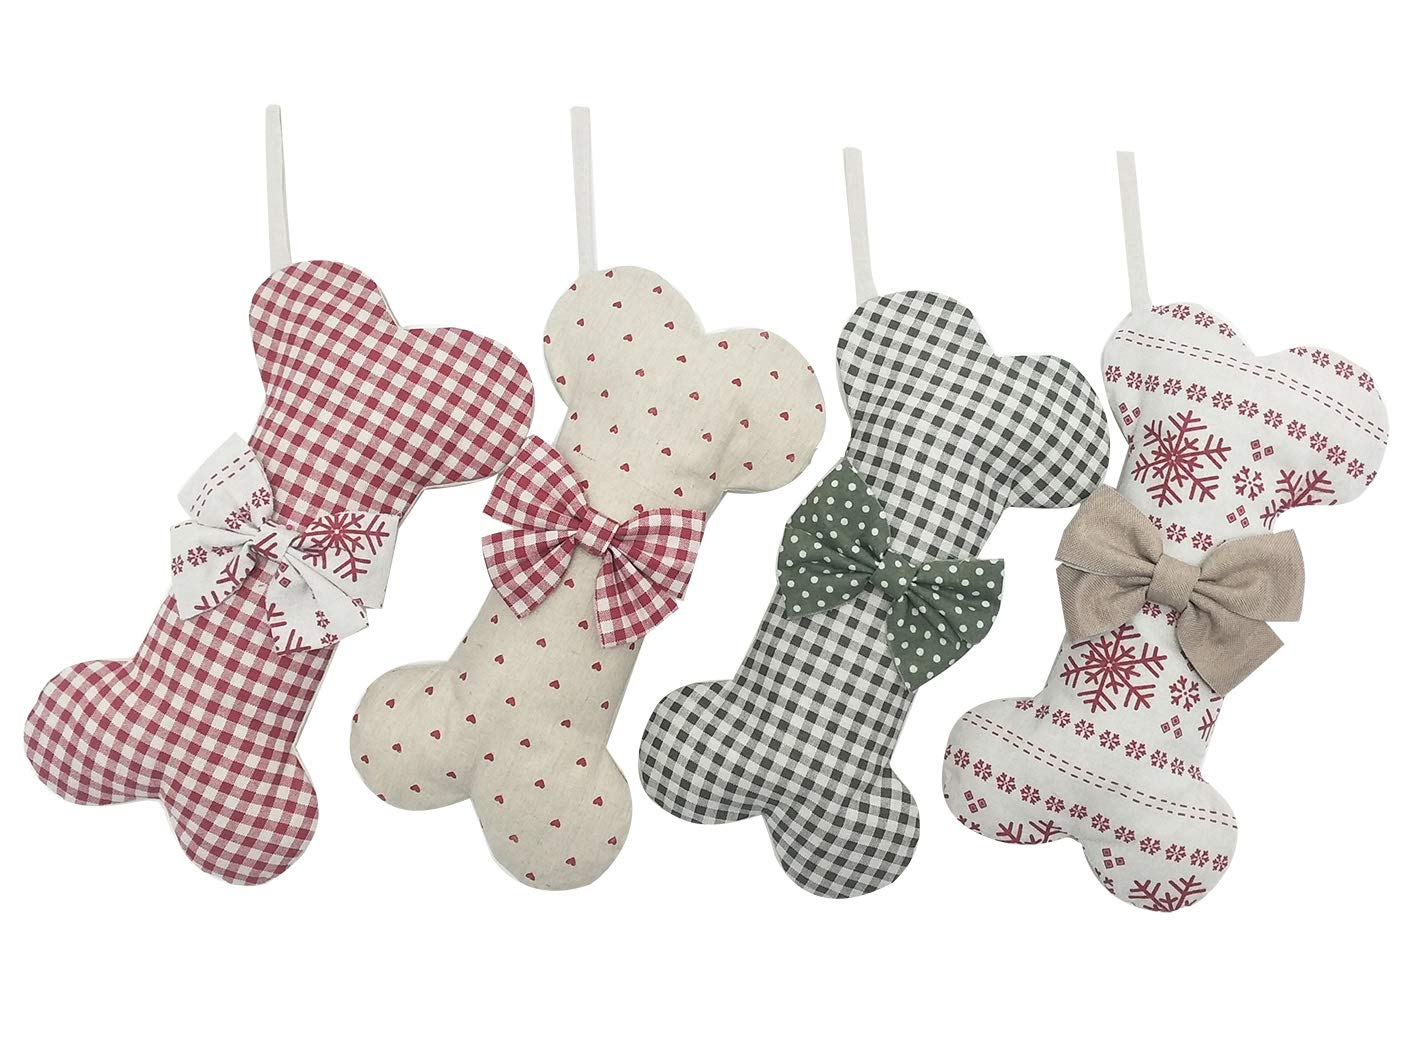 (Extra Large) Cotton Christmas Stocking Dog Bone Holidays Gingham Dog Bone for Pets Christmas Ornament #4 Snow-16 inches x 9 inches. BYT Collections